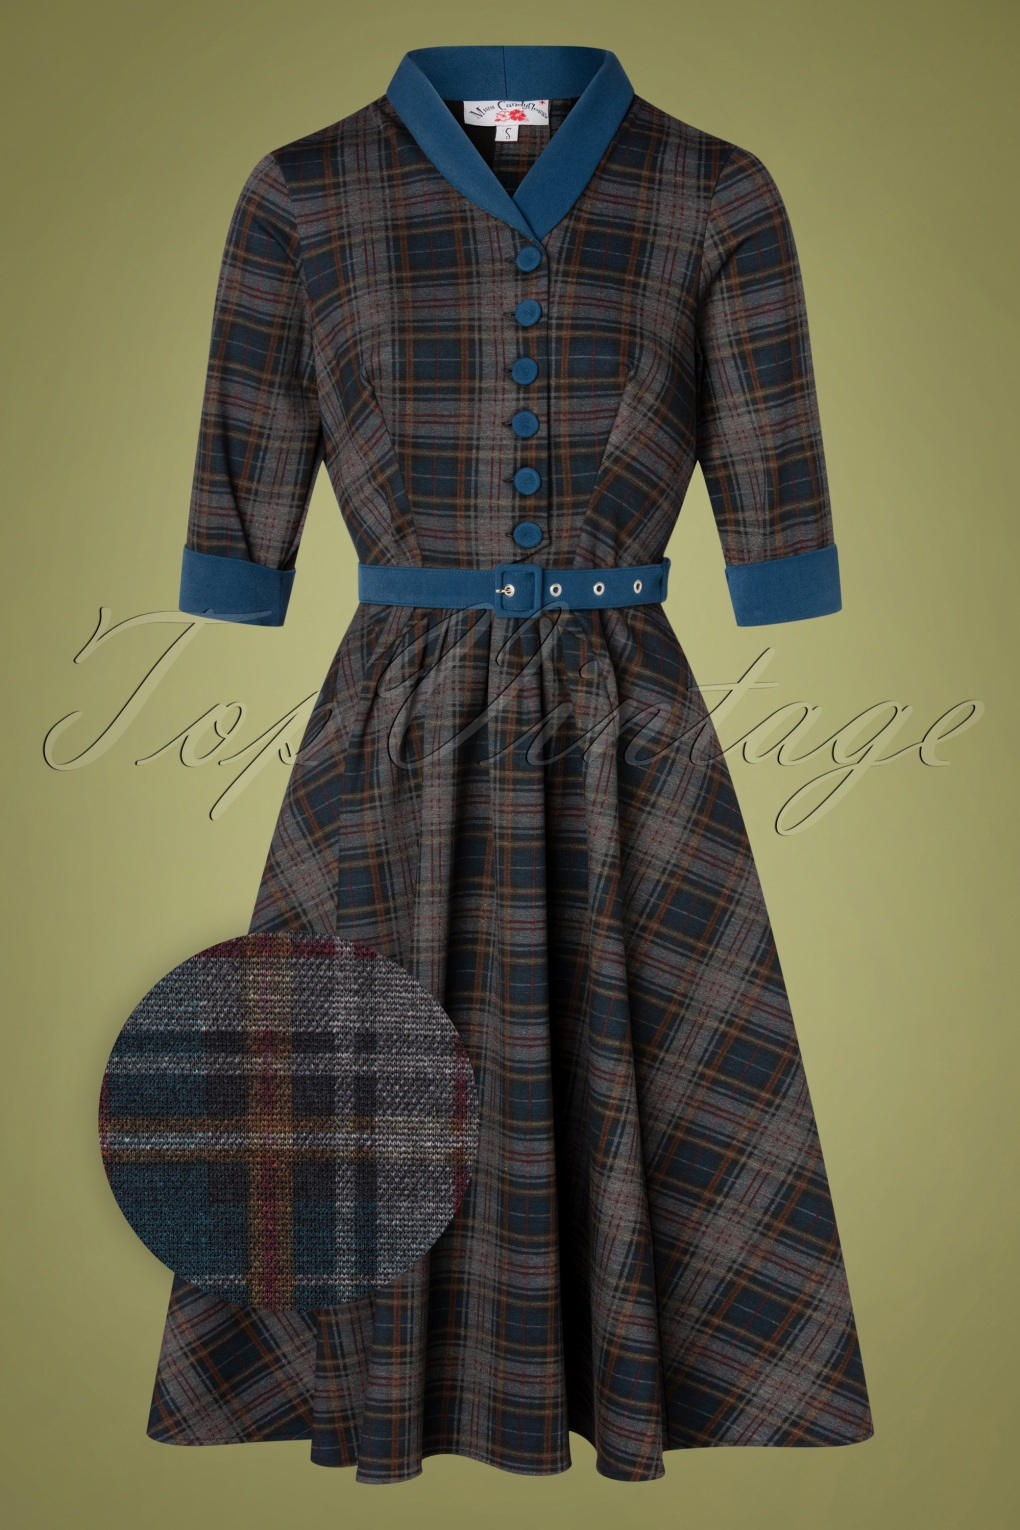 Vintage Shirtwaist Dress History TopVintage exclusive  40s Lily Teagan Tartan Swing Dress in Midnight Blue £116.24 AT vintagedancer.com